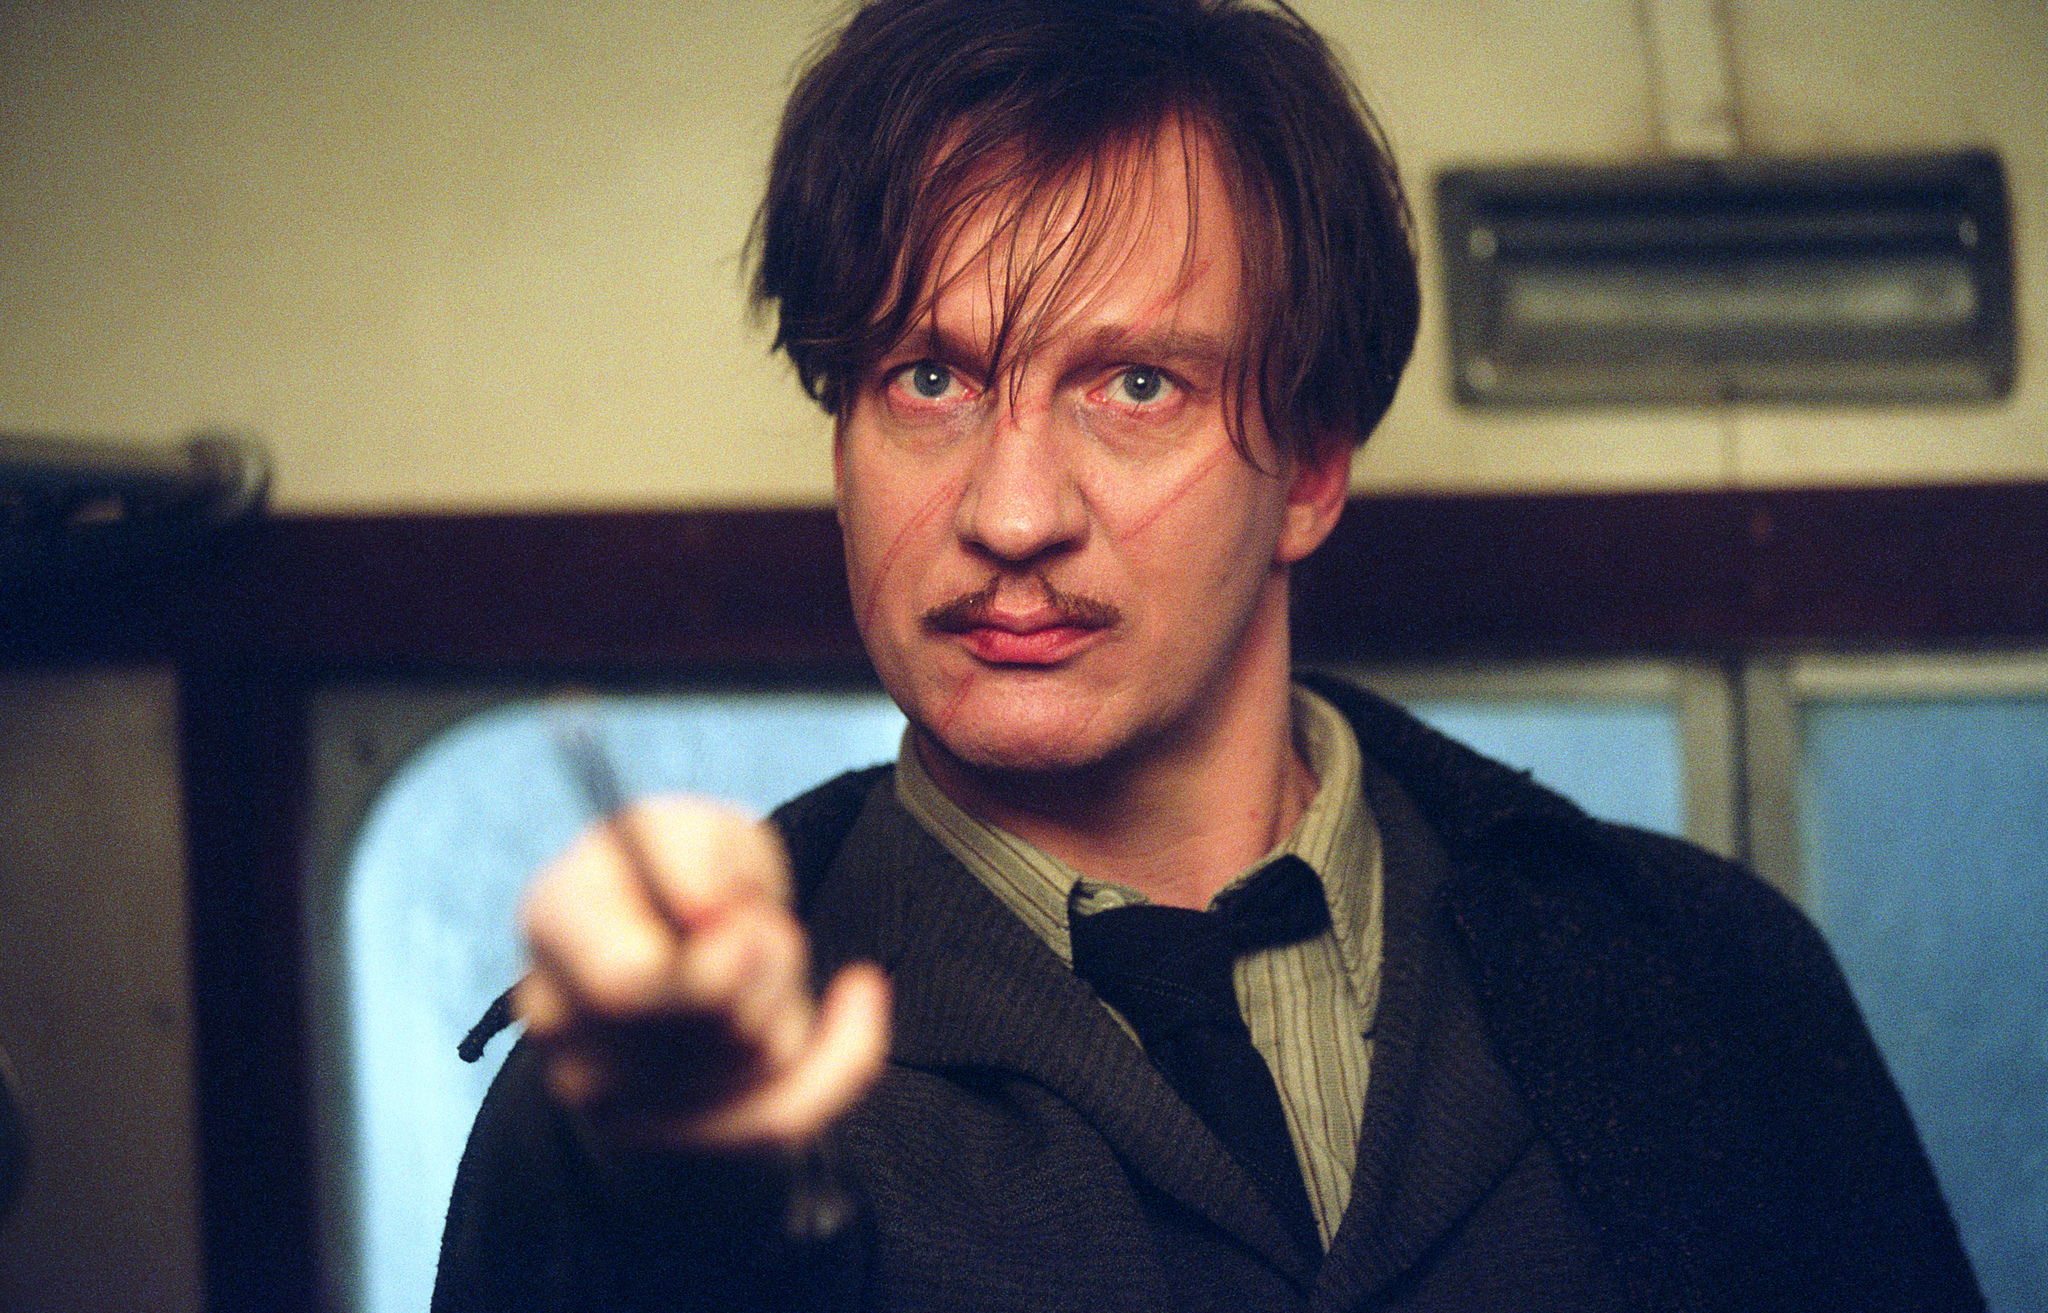 scary good our favorite werewolves imdb david thewlis in harry potter and the prisoner of azkaban 2004